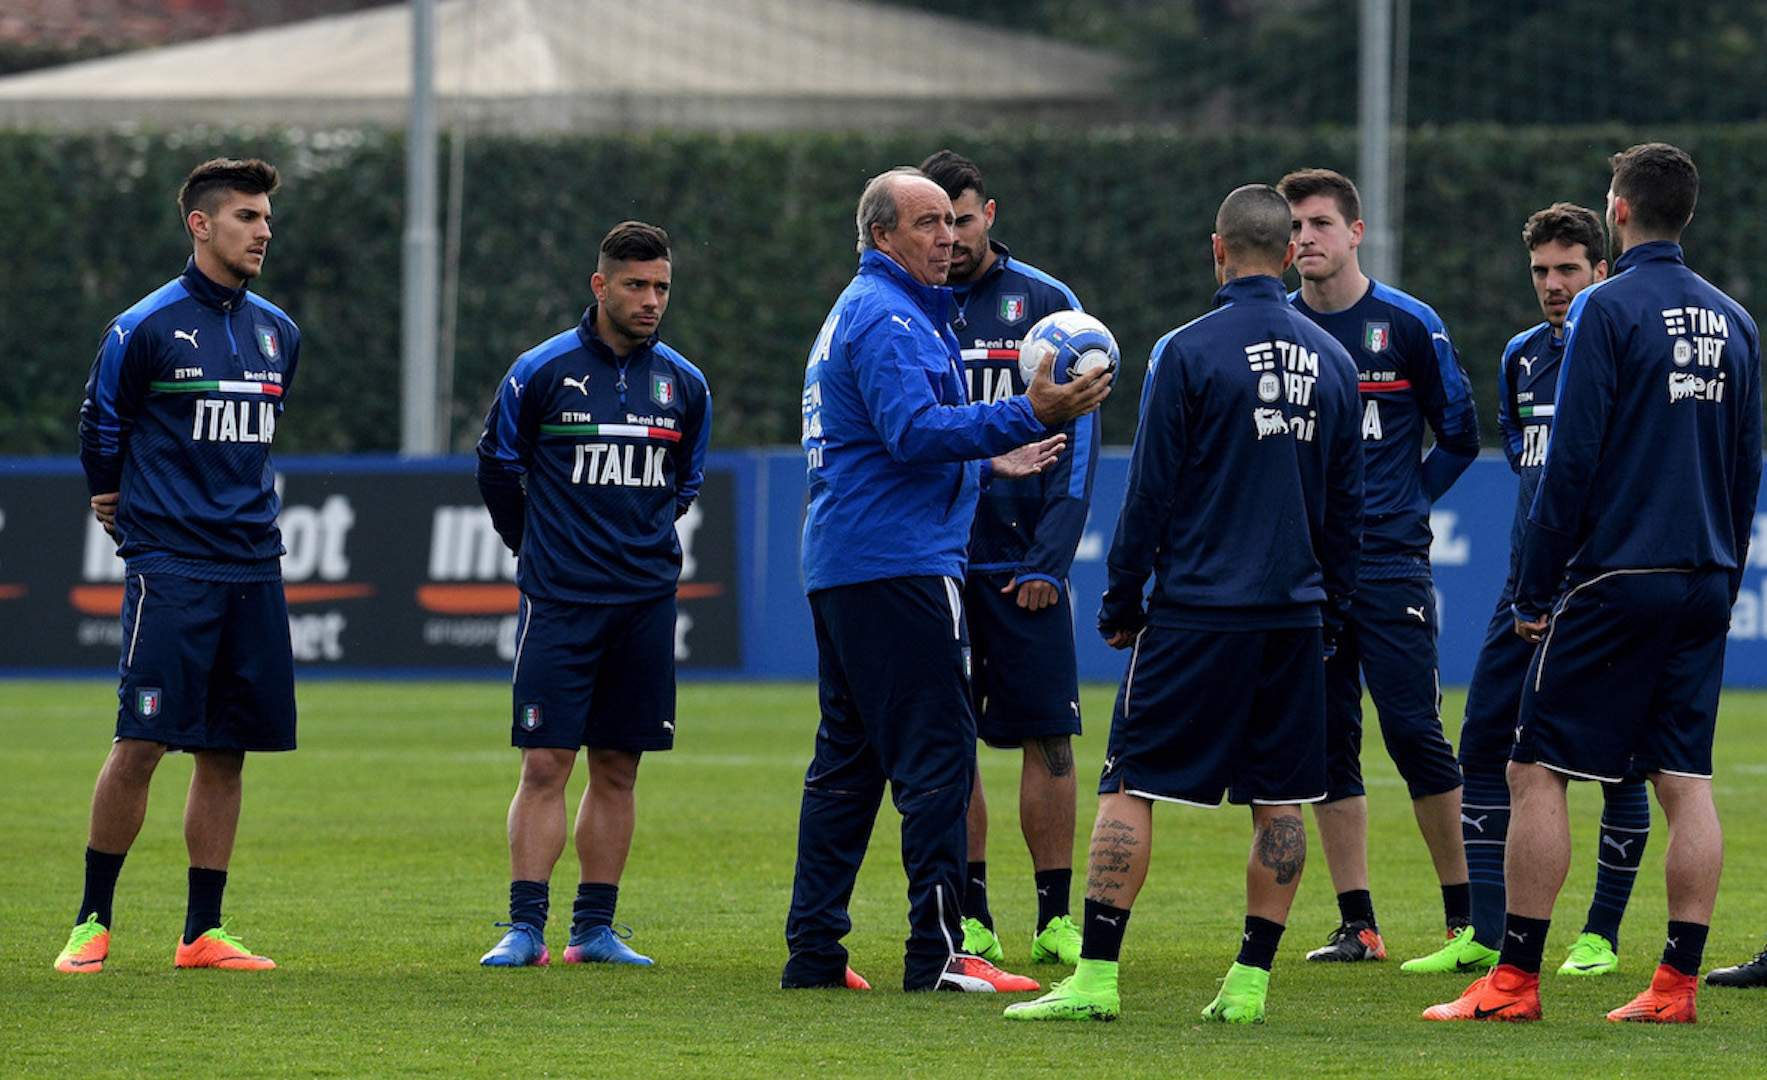 FLORENCE, ITALY - FEBRUARY 21: Italian national team head coach Giampiero Ventura (C) reacts during the training session at the club's training ground at Coverciano on February 21, 2017 in Florence, Italy. (Photo by Claudio Villa/Getty Images)